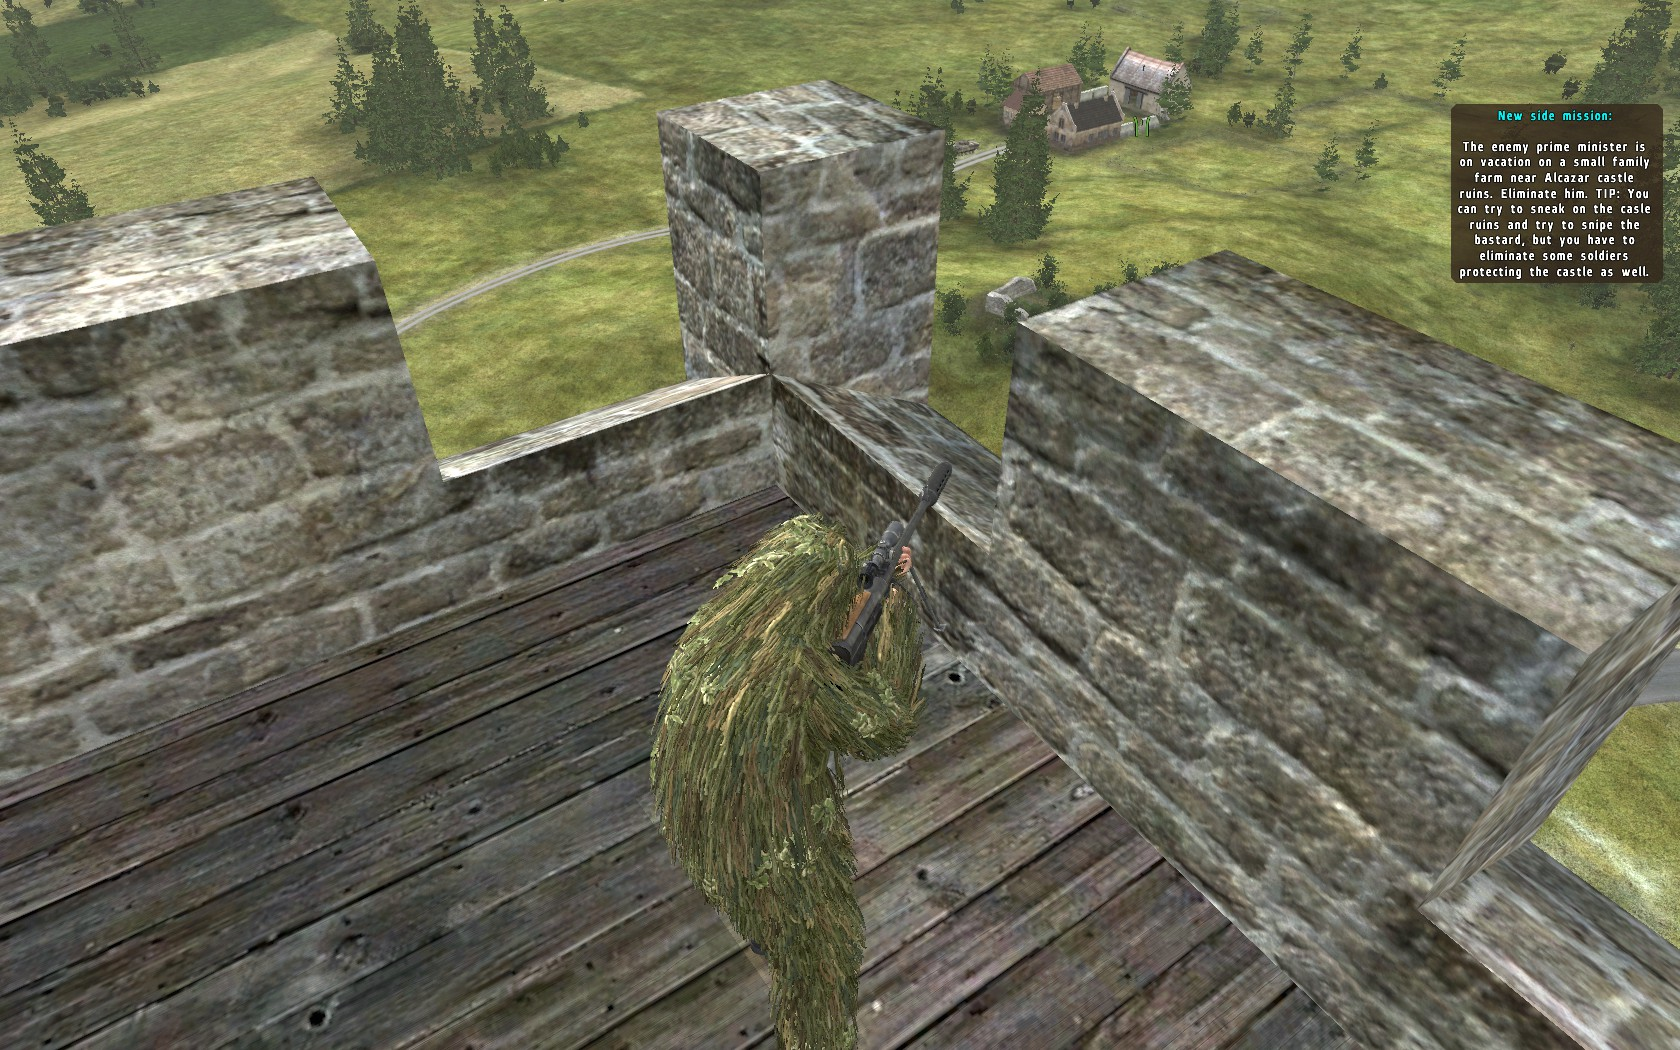 Side mission: Elimination of enemy government official from nearby castle ruin (you have to silently takeout guards of the castle to get to this advantage point)